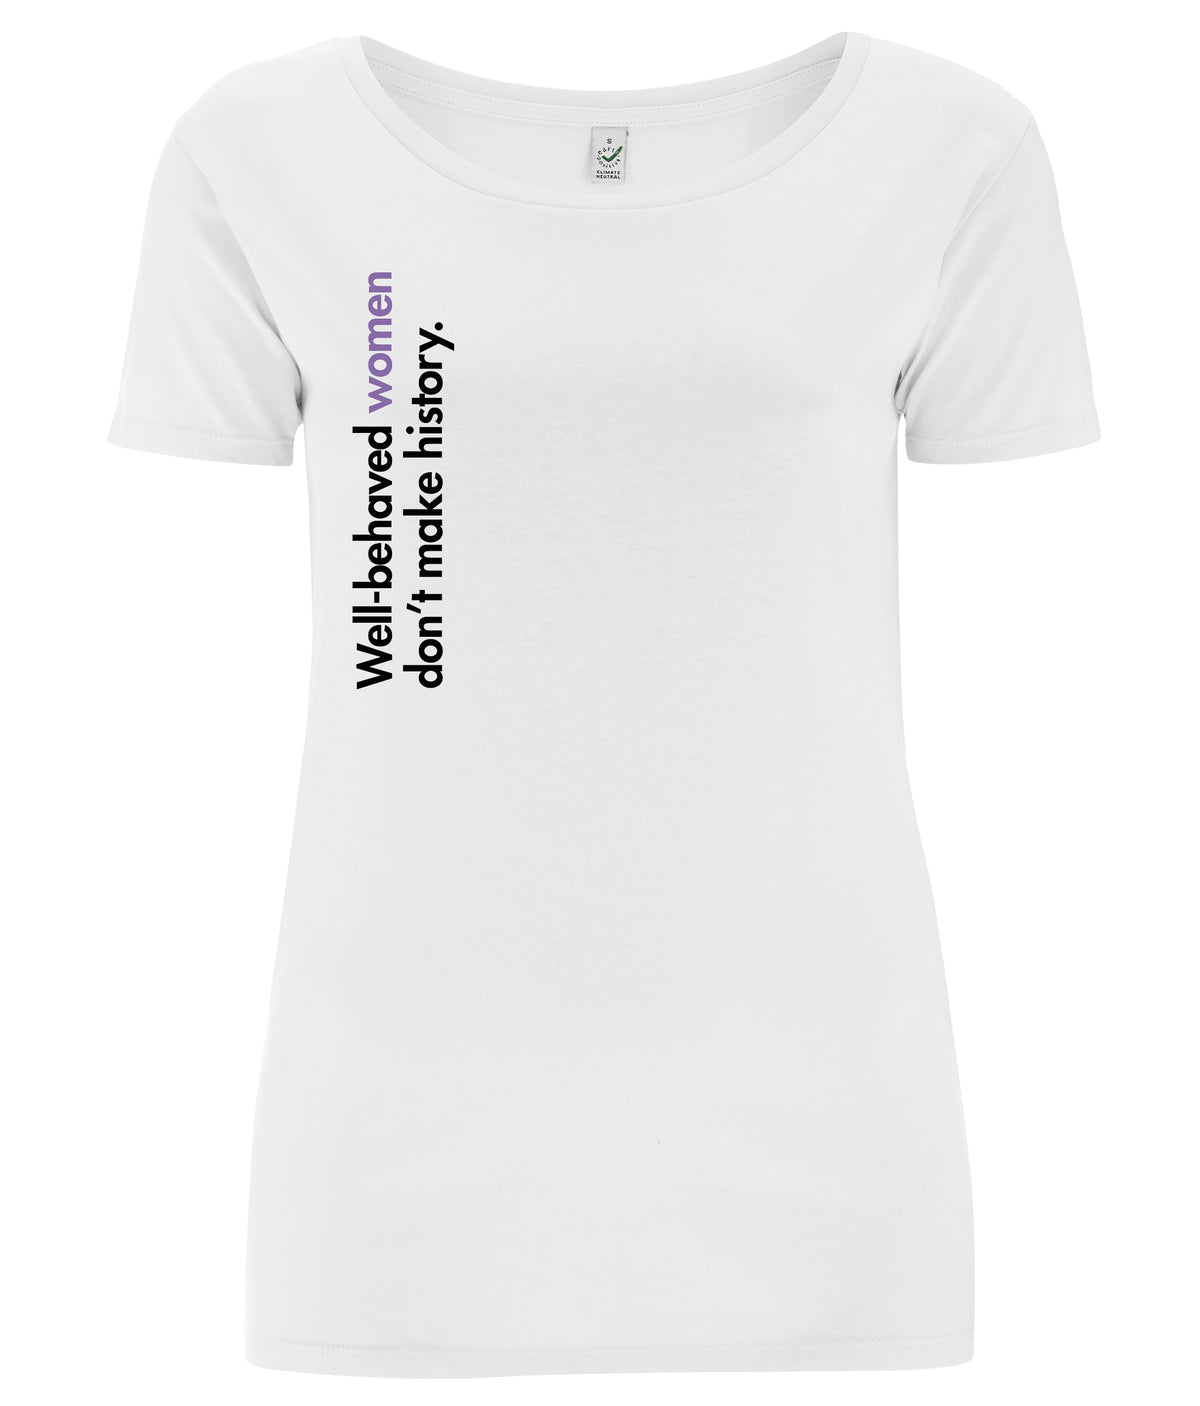 Well Behaved Women Don't Make History Open Neck Organic Feminist T Shirt White